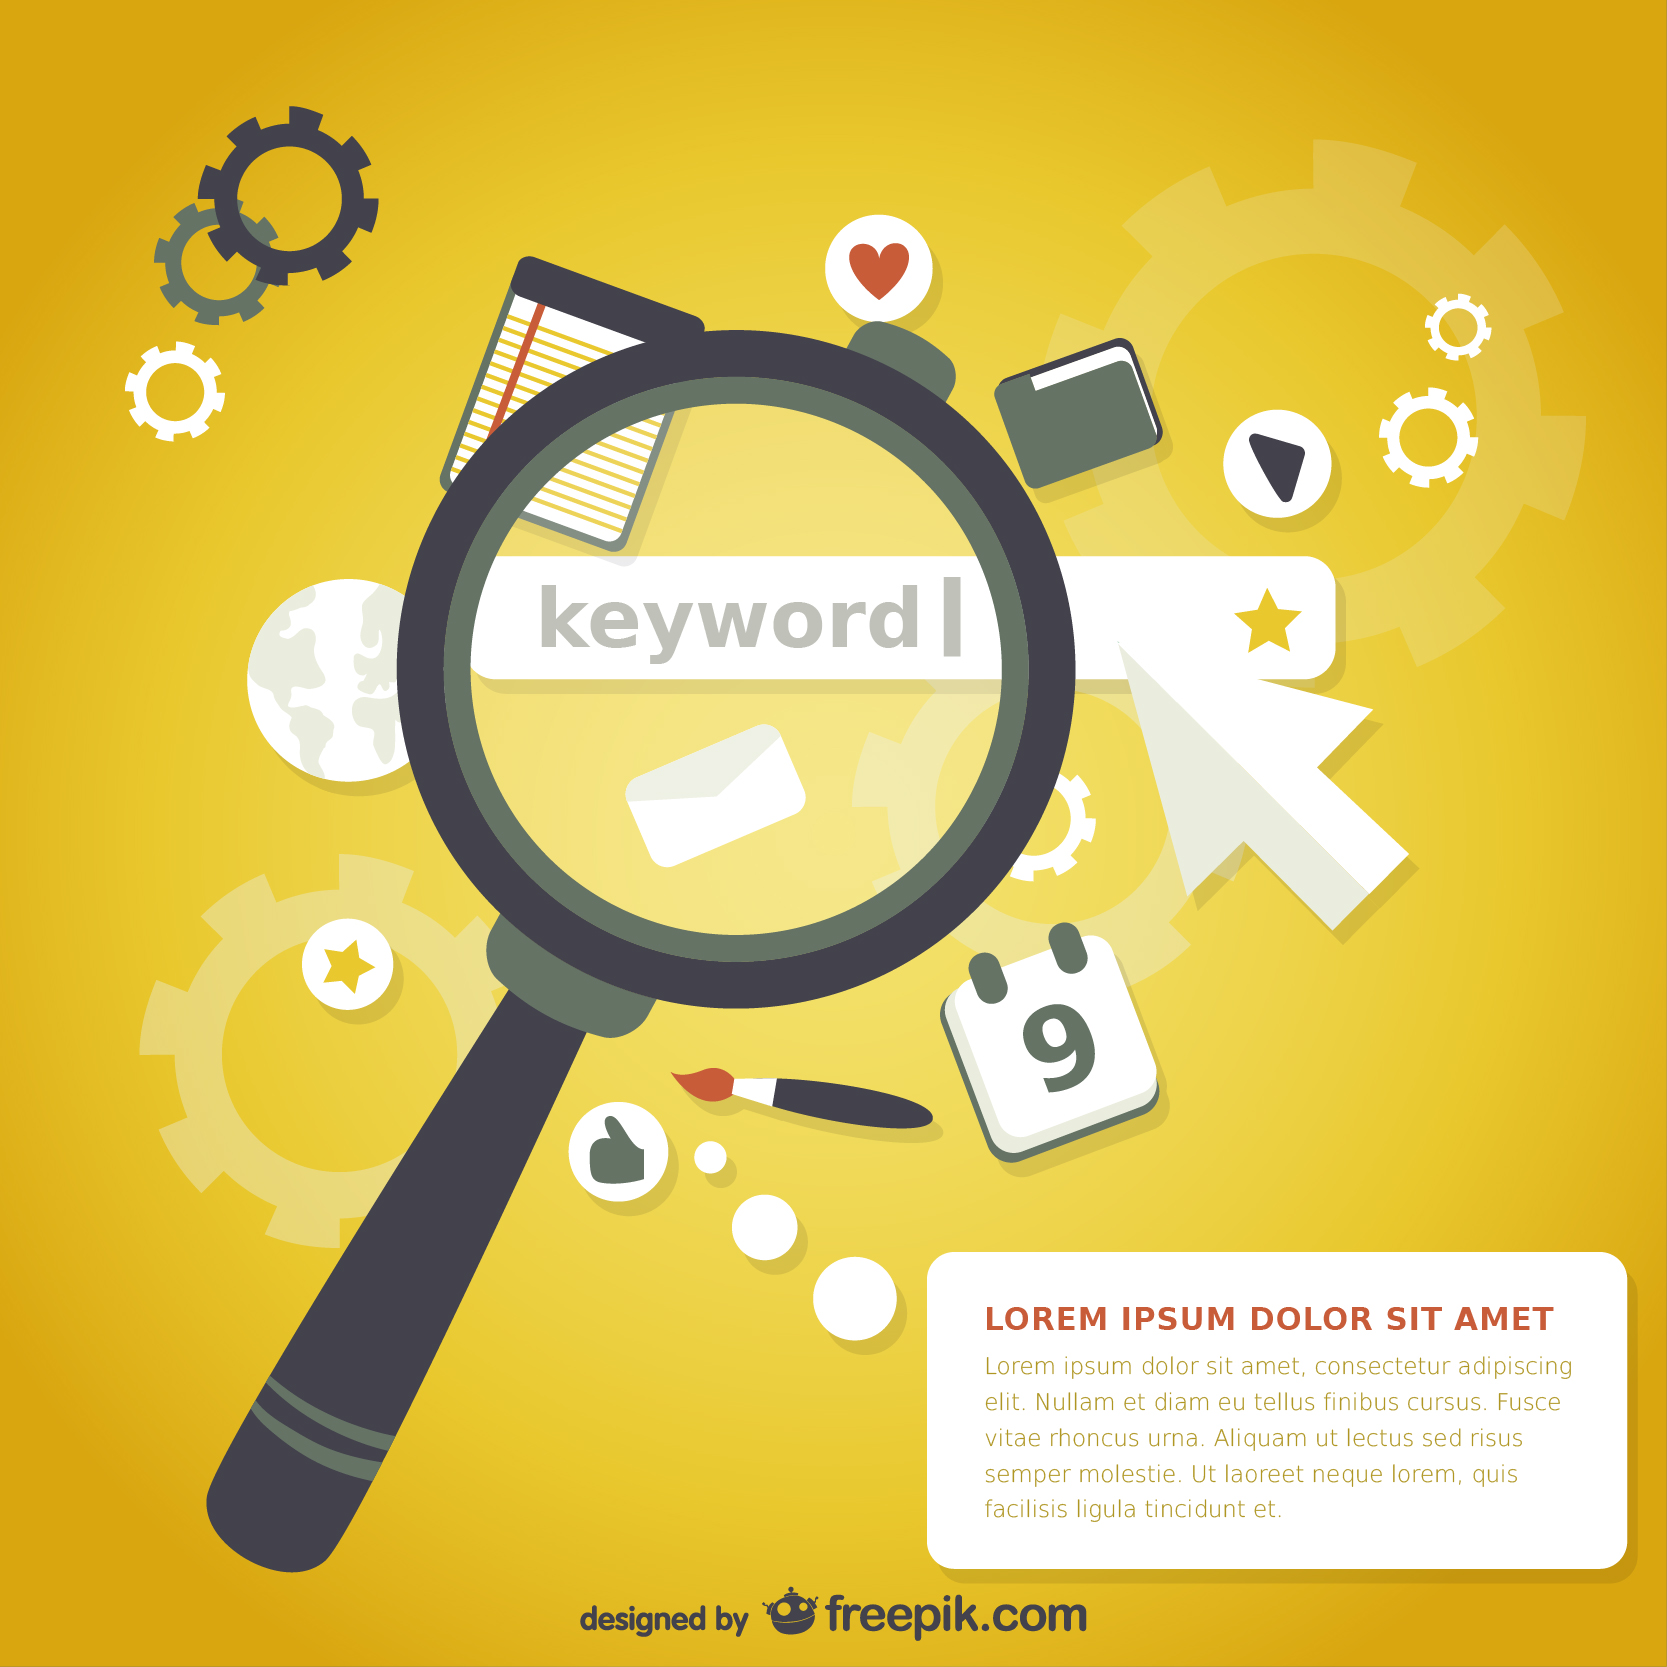 Ultimate SEO Guide - Longtail Keyword Research